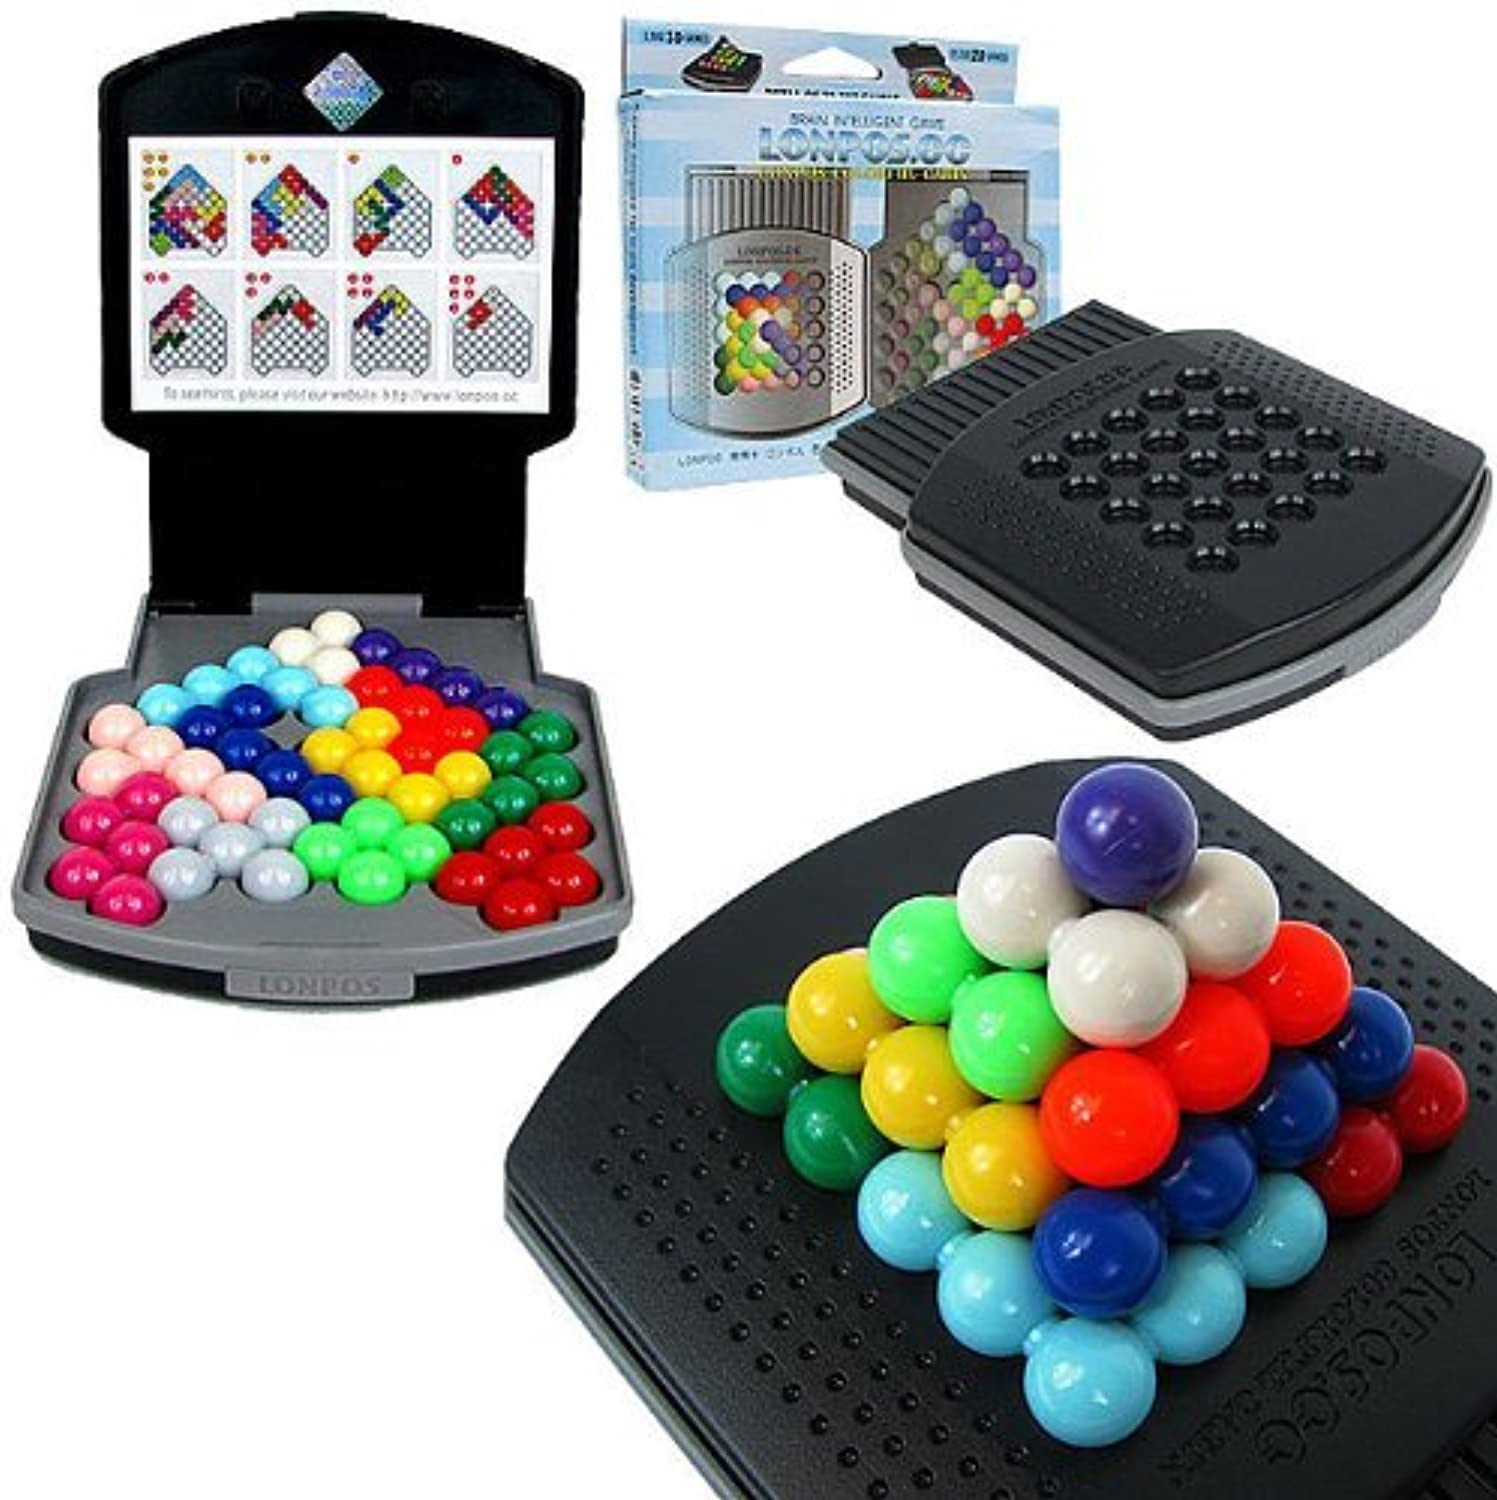 Lonpos Farbeful Cabin 066 Brain Intelligence Game by Trademark Commerce